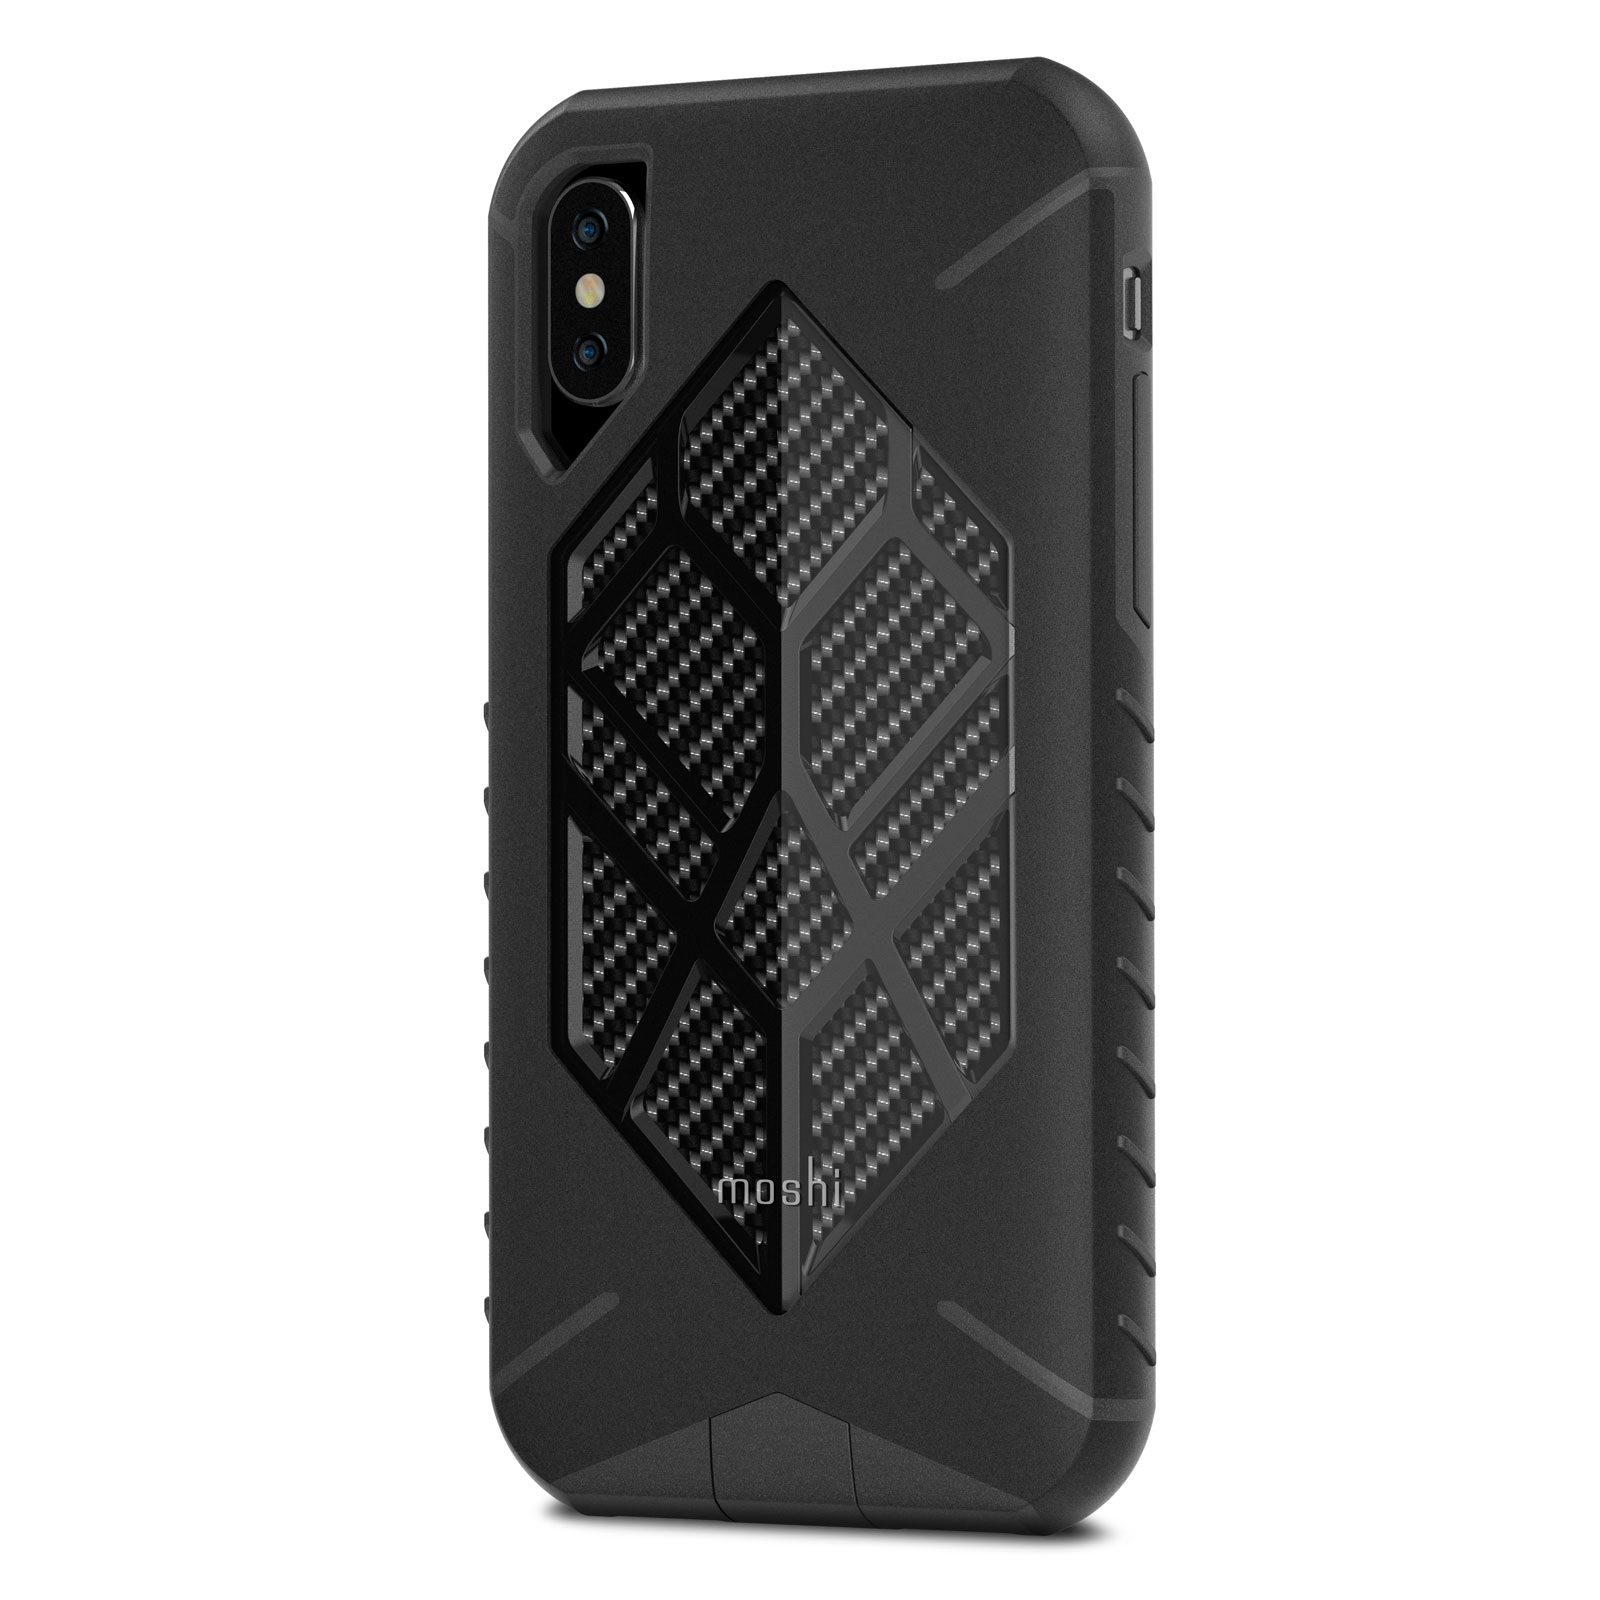 Talos Extreme Drop Protection Case-image